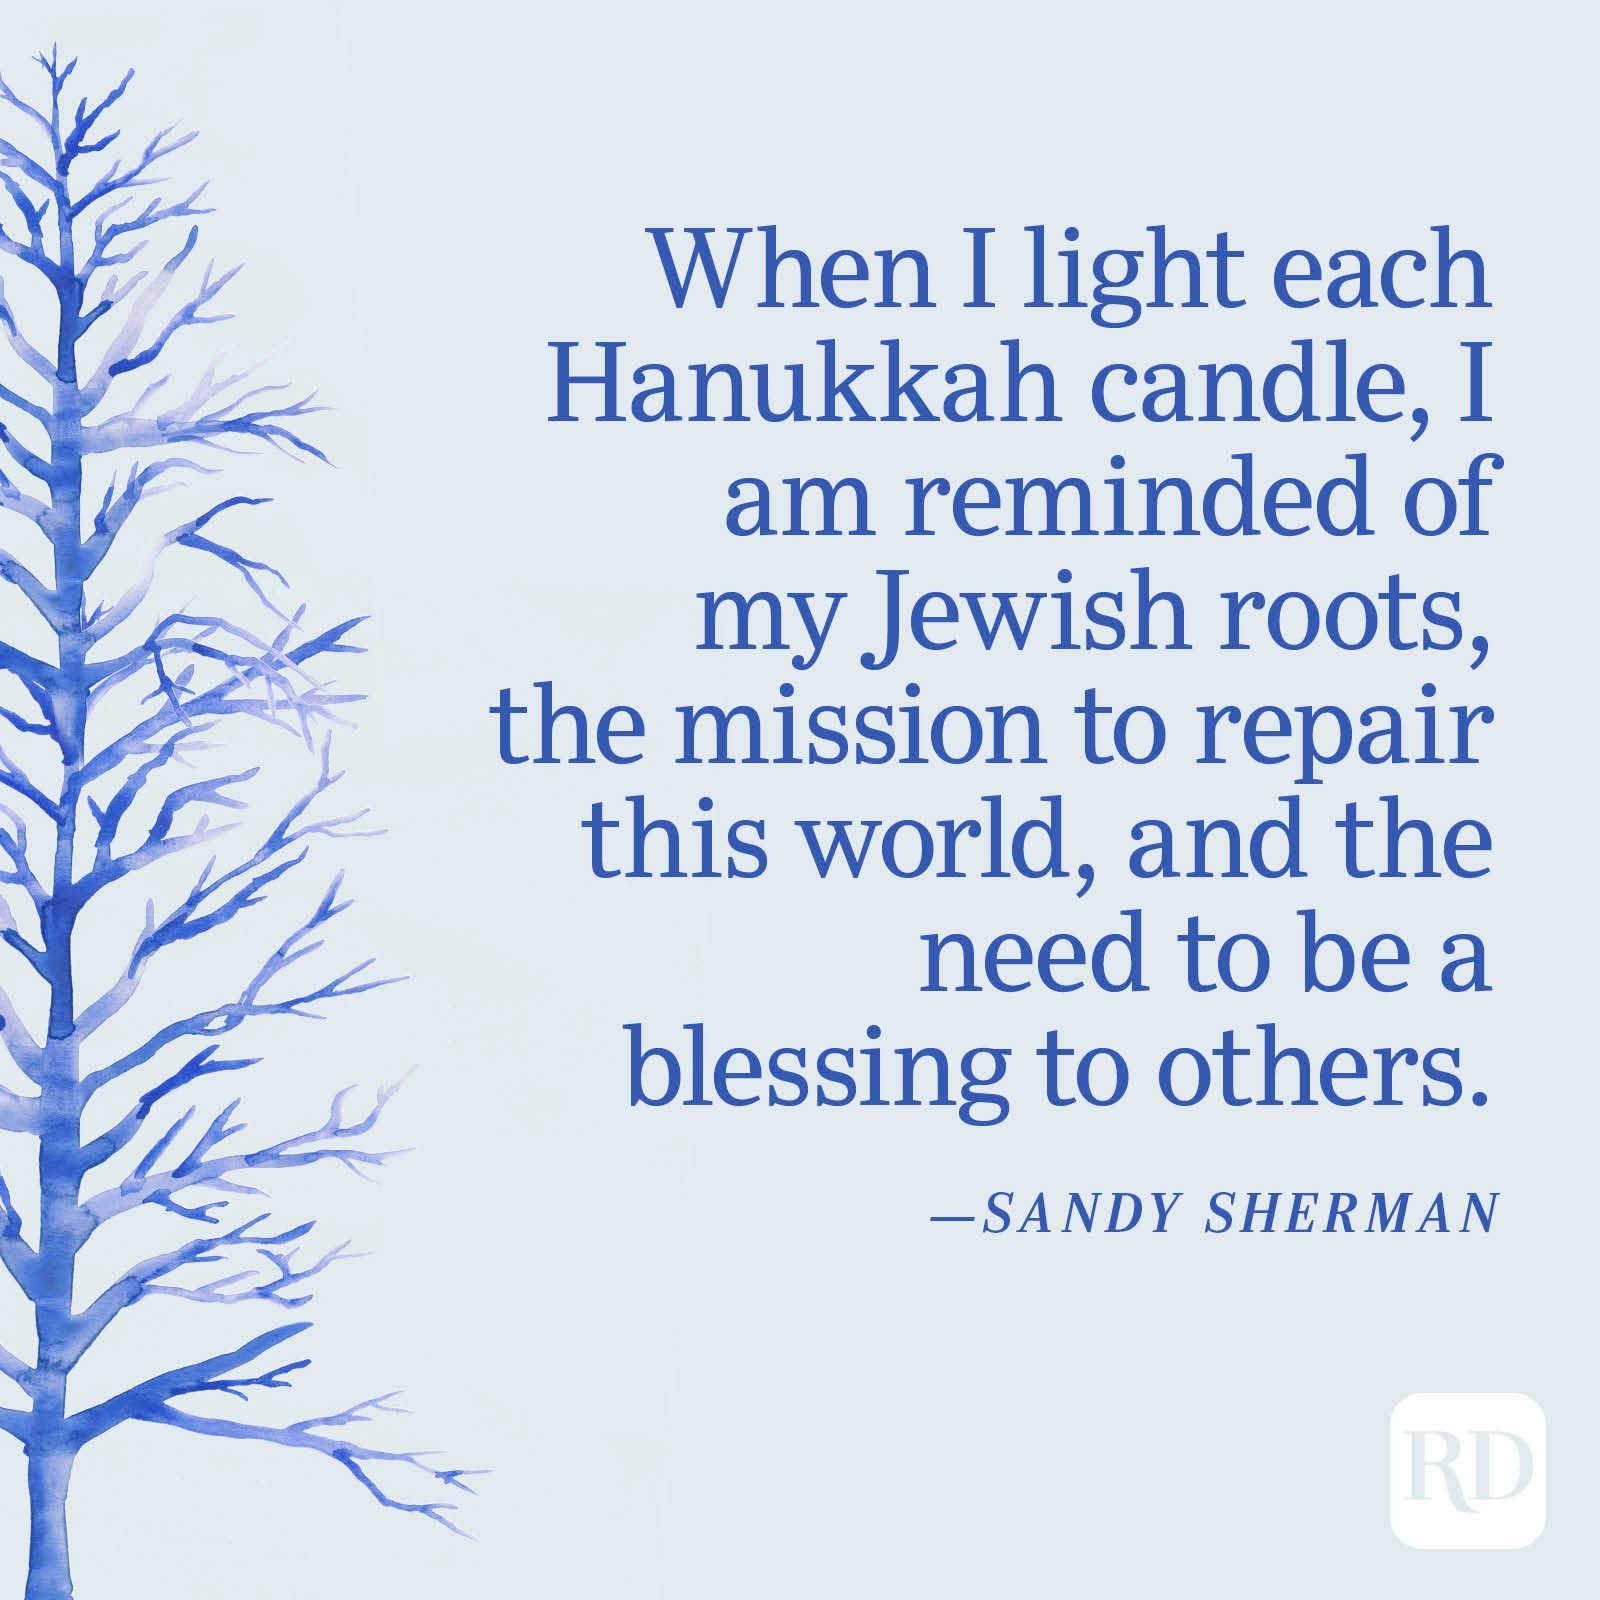 """""""When I light each Hanukkah candle, I am reminded of my Jewish roots, the mission to repair this world, and the need to be a blessing to others."""" —Sandy Sherman"""